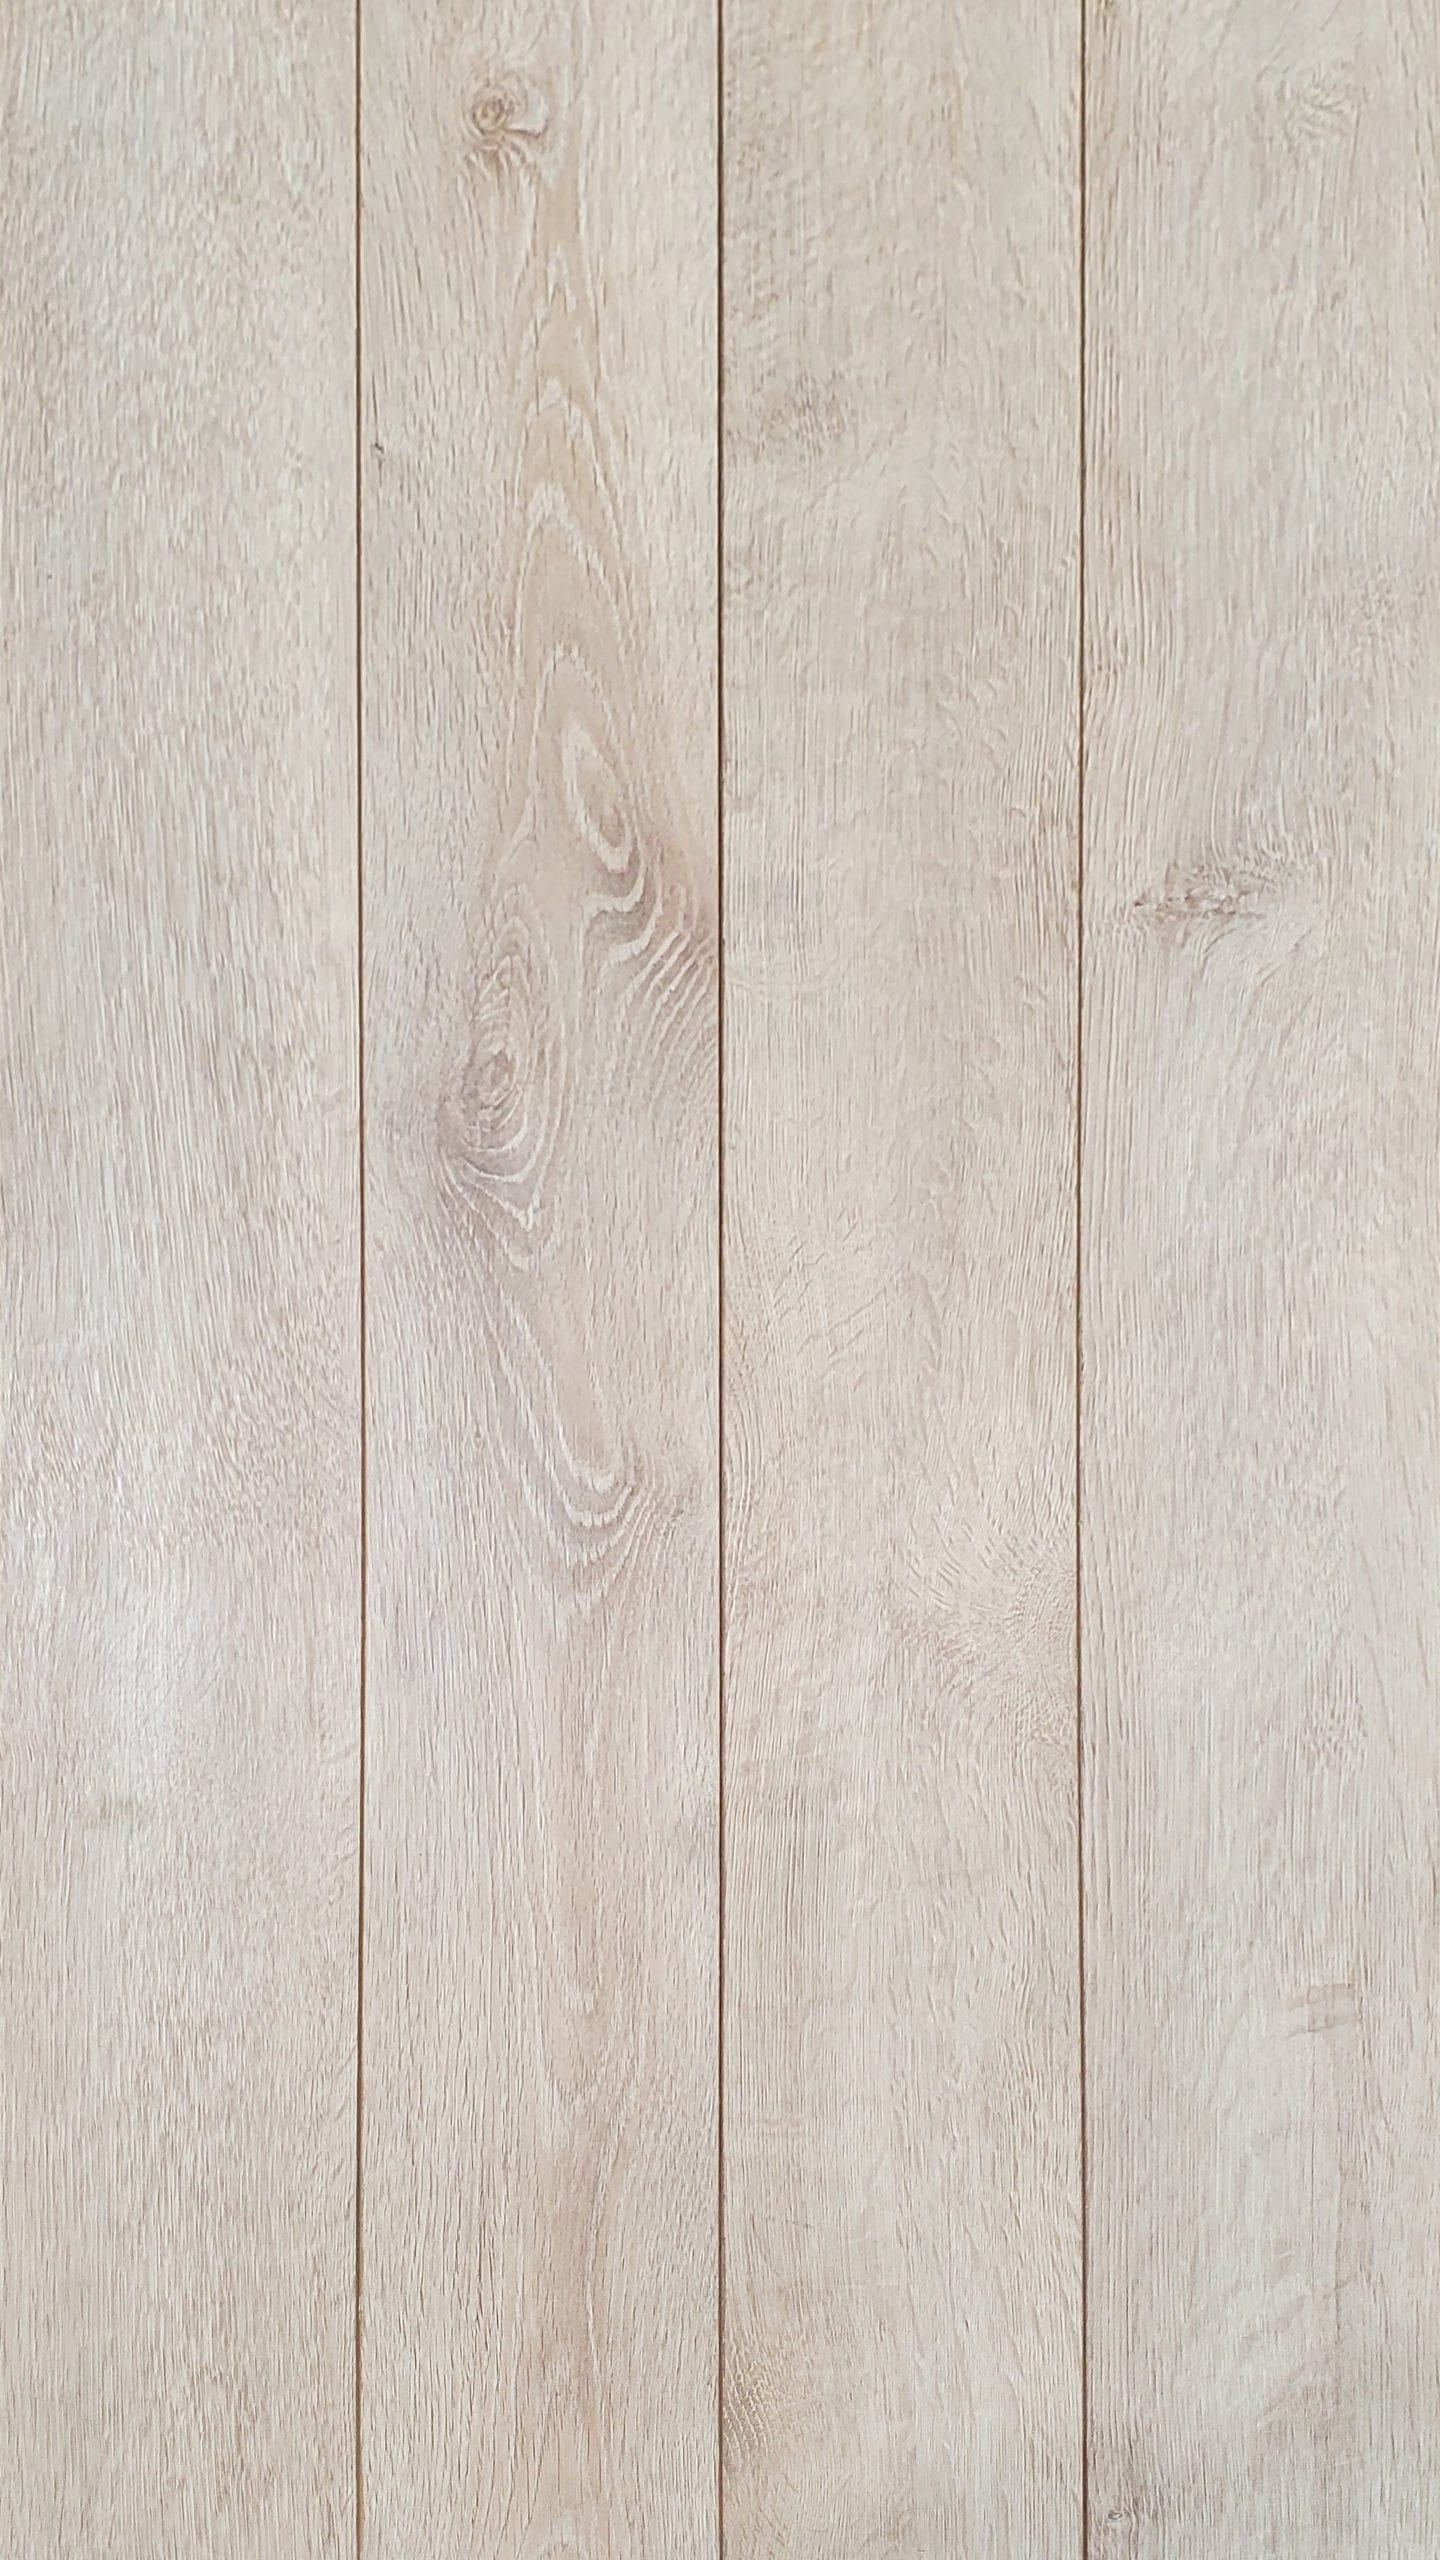 12mm 5in wide Euro German Laminate_Florence_13.61sfct_1.49